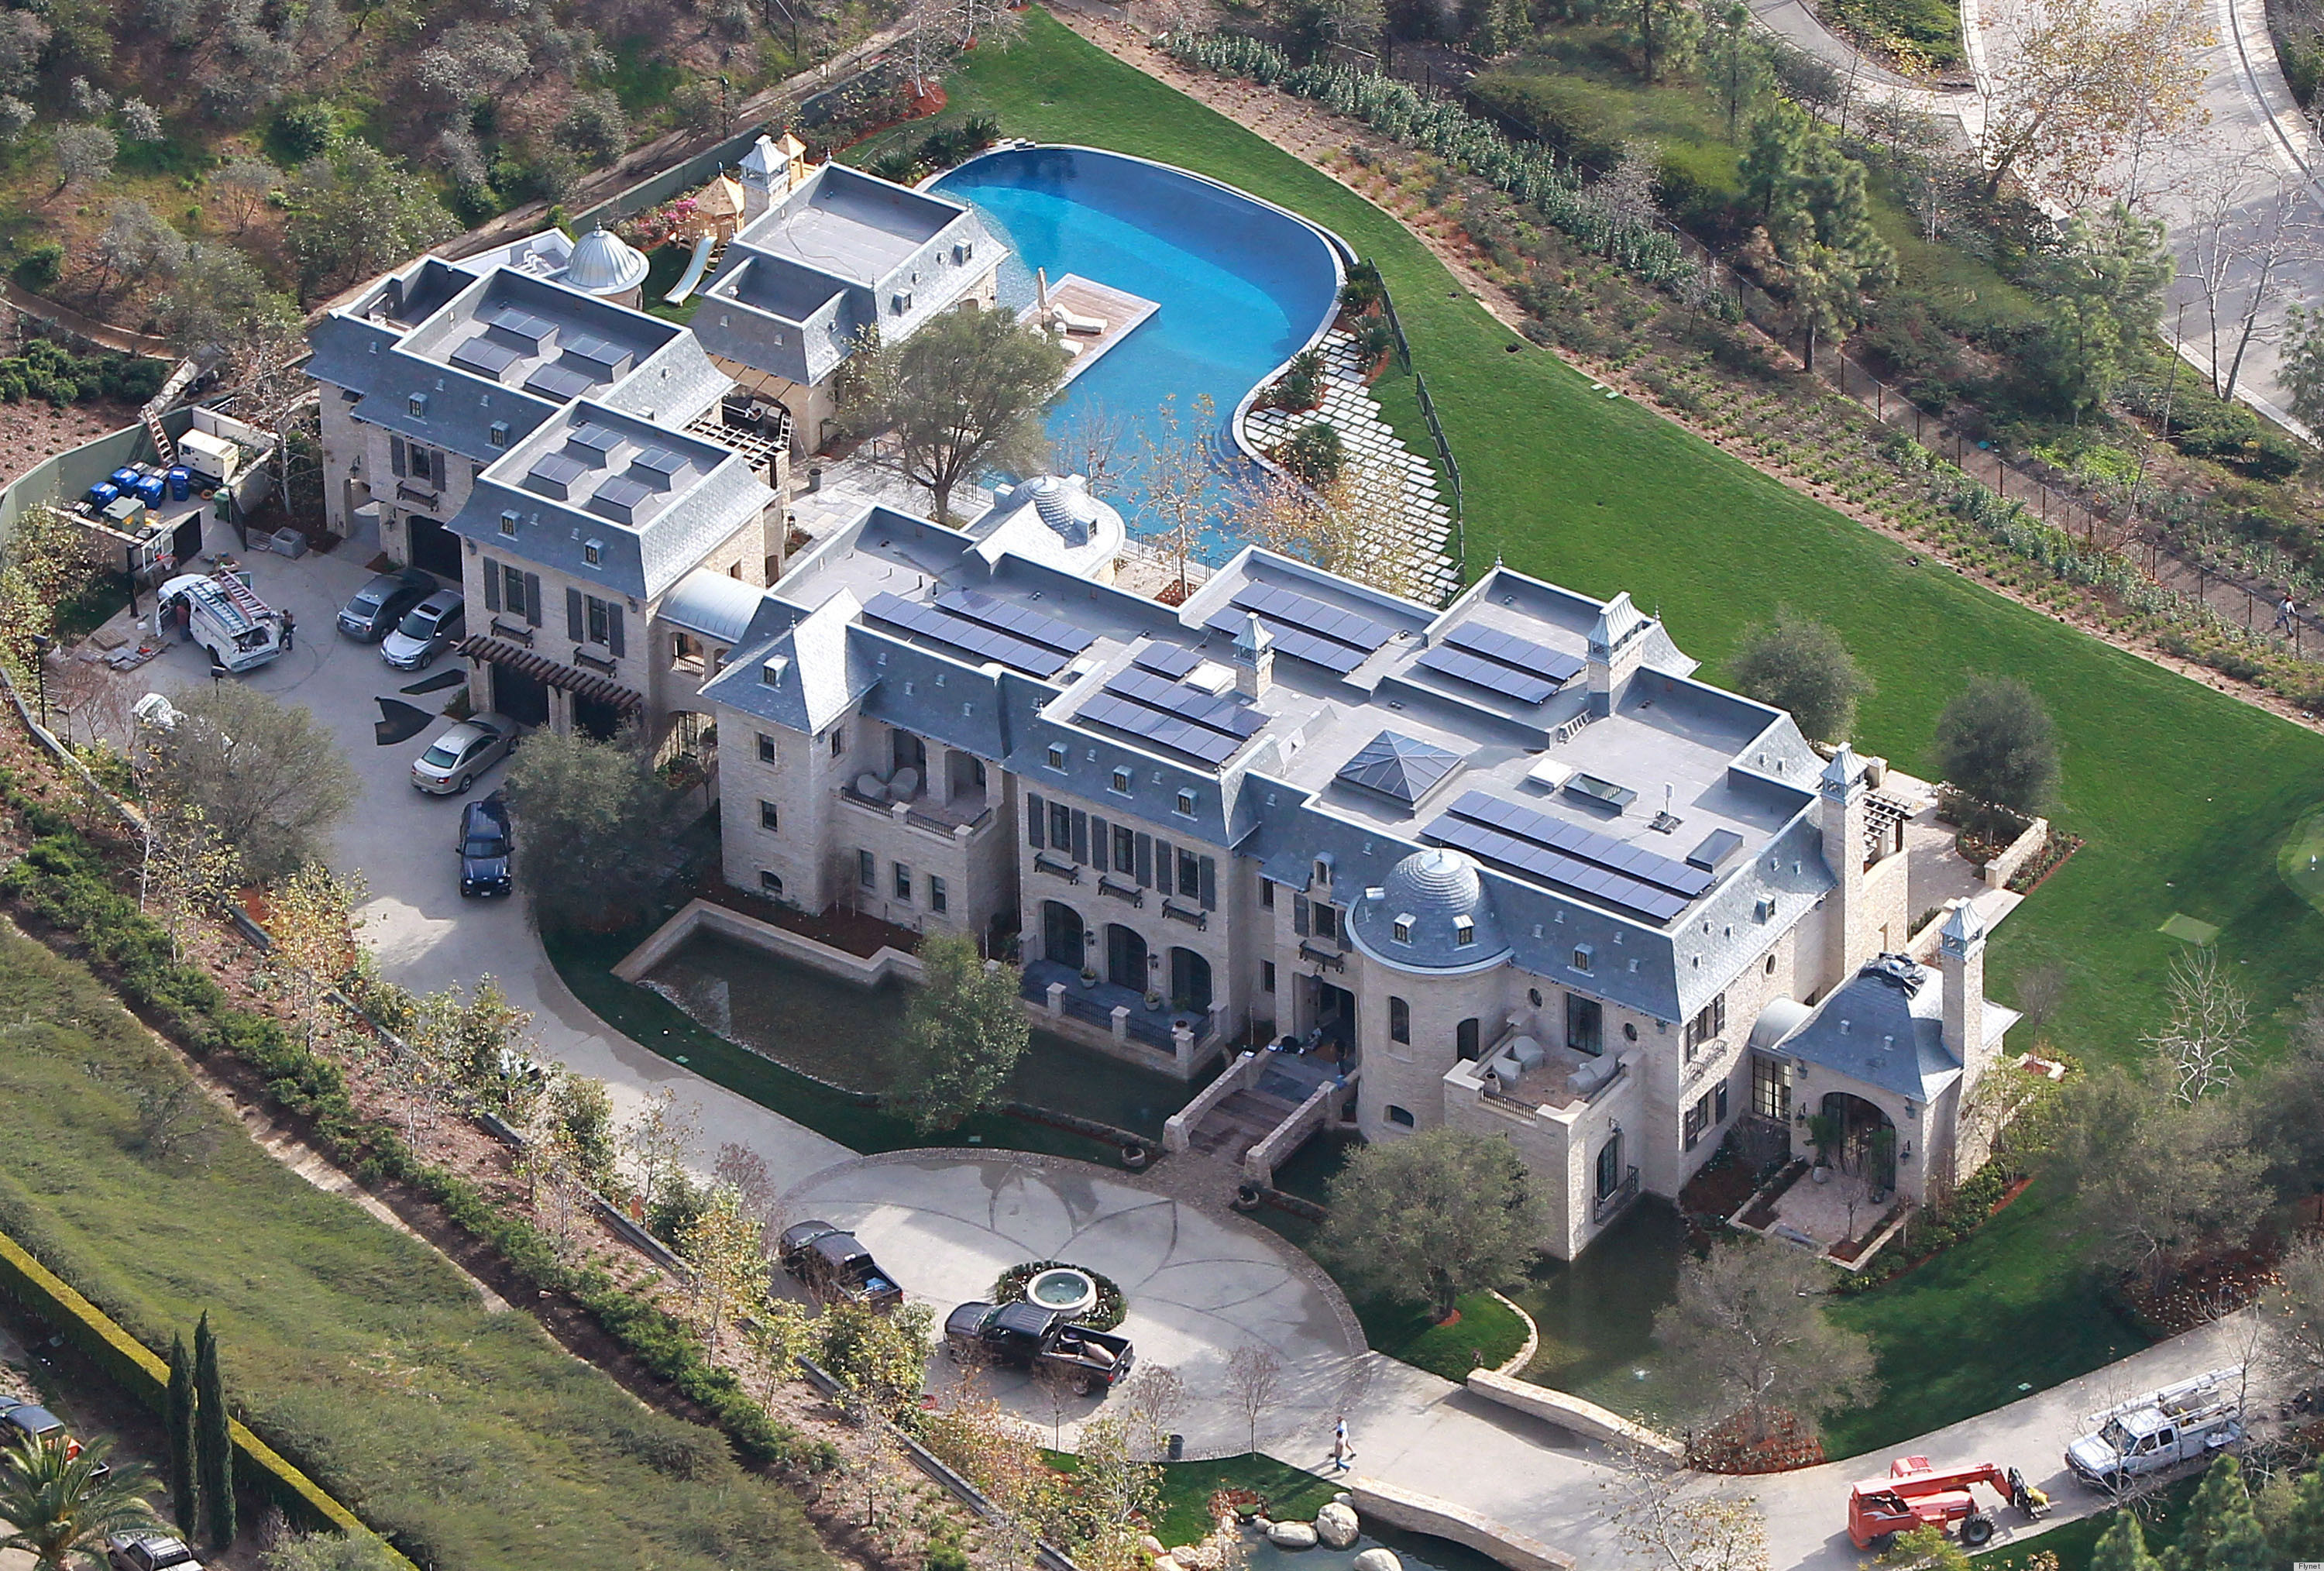 Gisele & Tom Brady's New House In California Is Bigger Than All Of Our